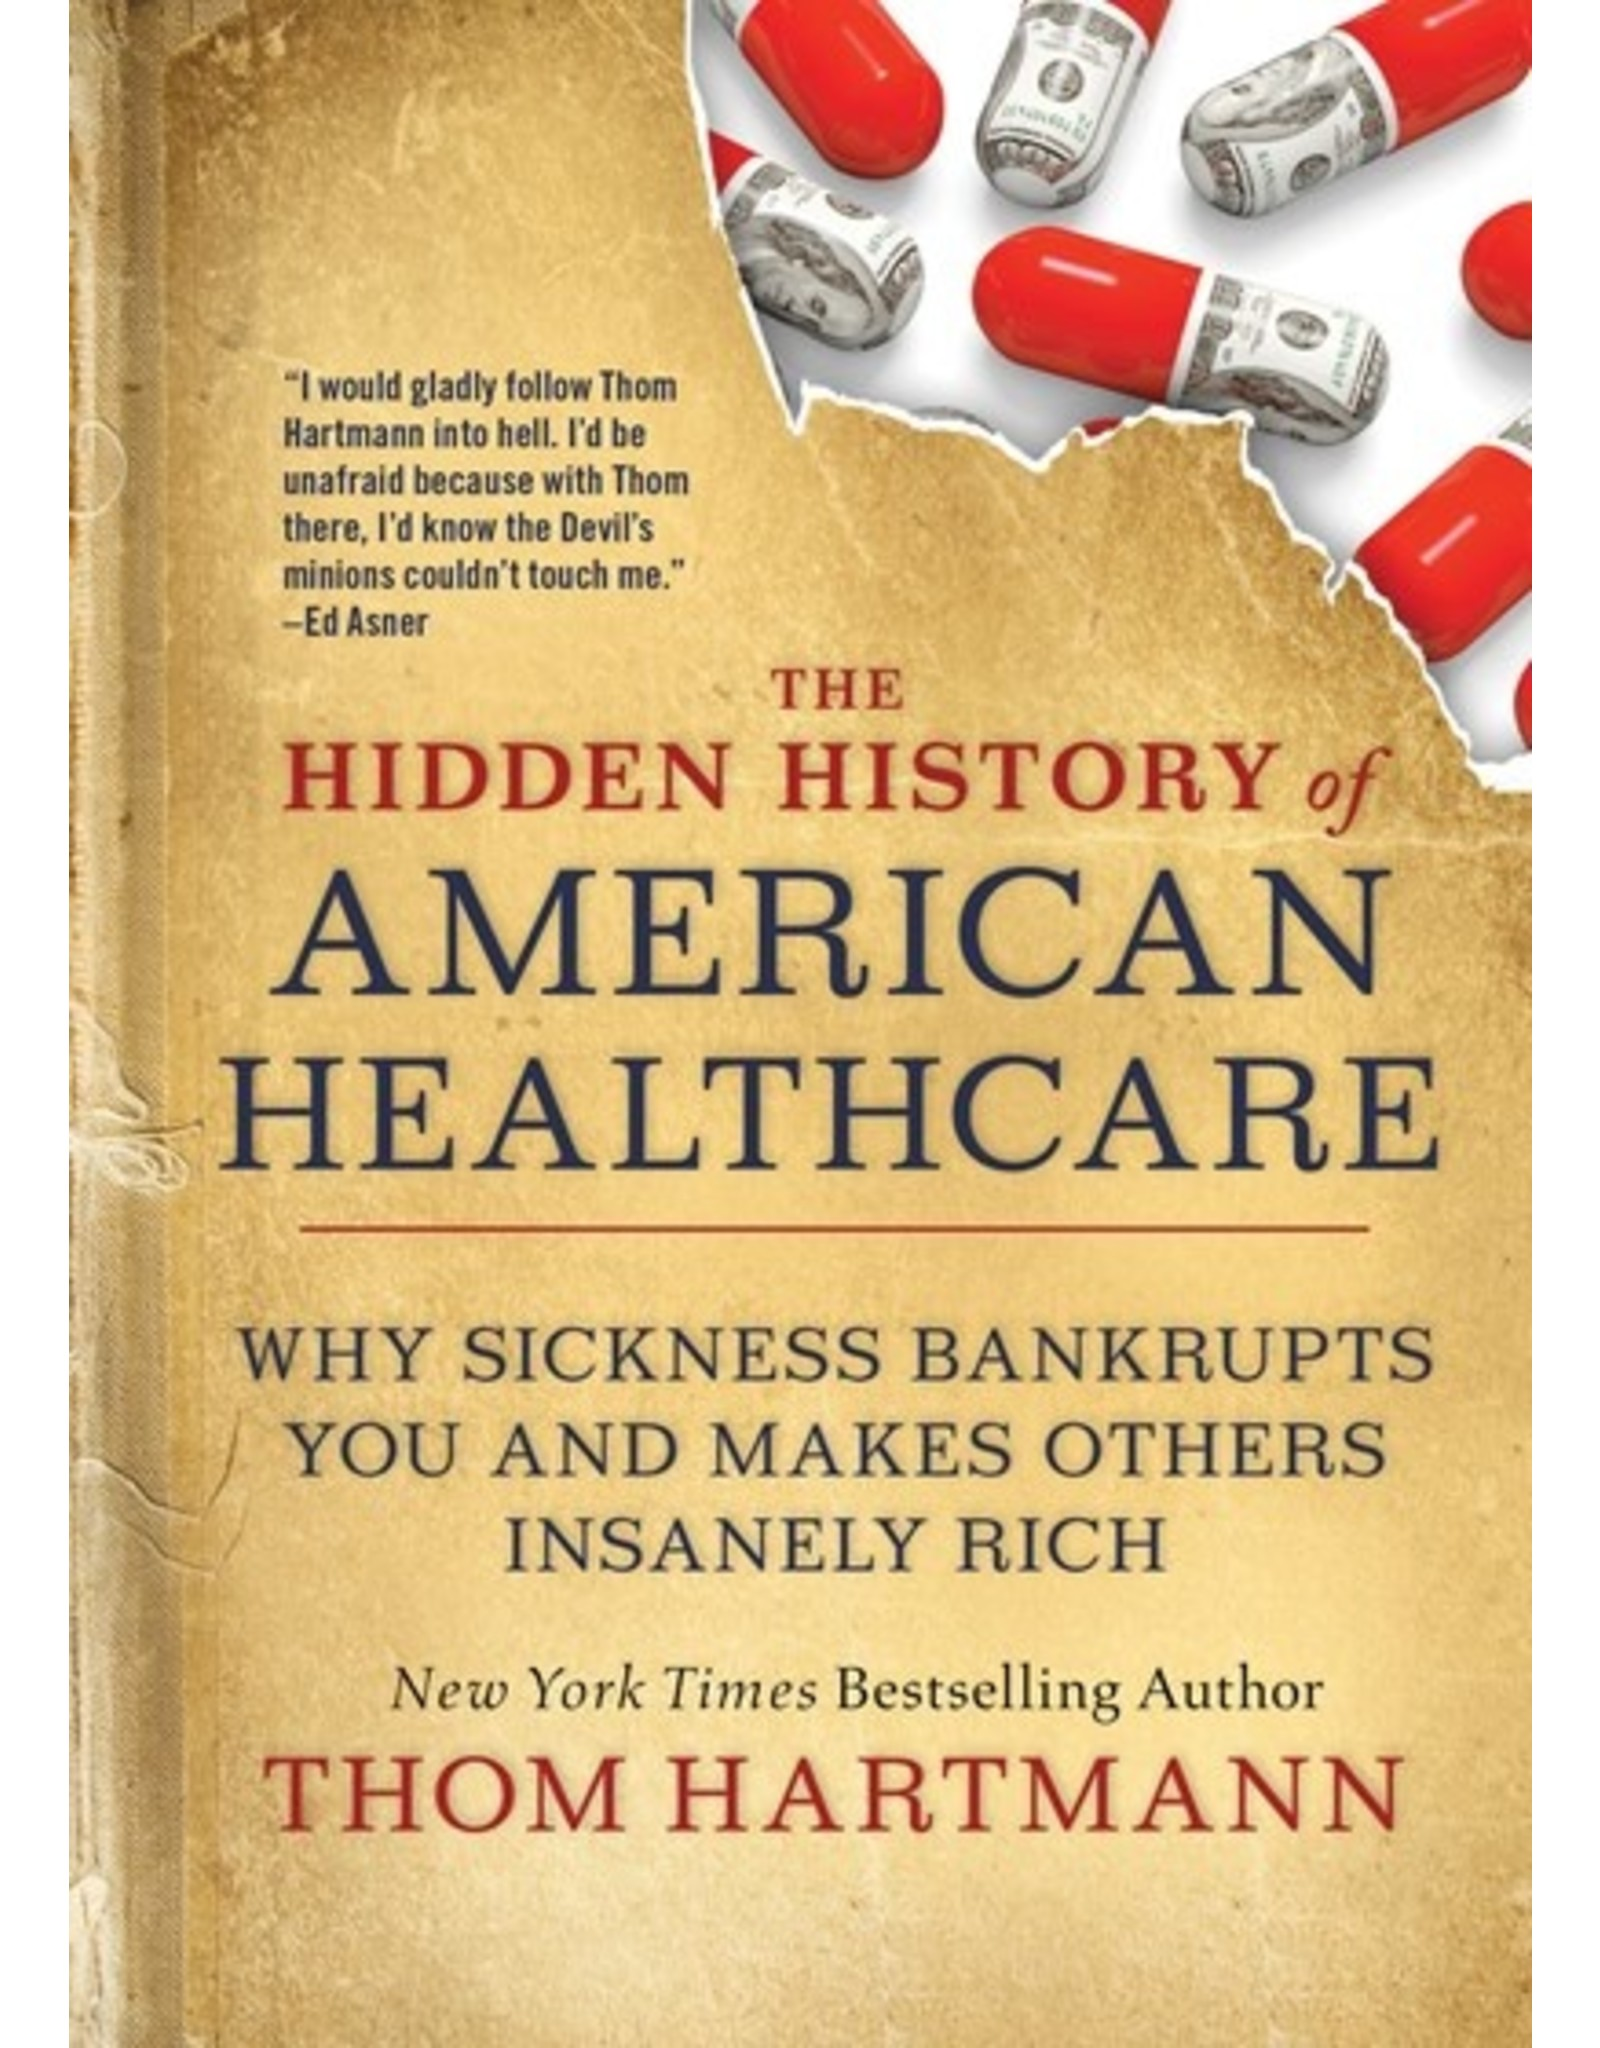 Books The Hidden History of American Healthcare: Why Sickness Bankrupts You and Makes Others Insanely Rich by Thom Hartman